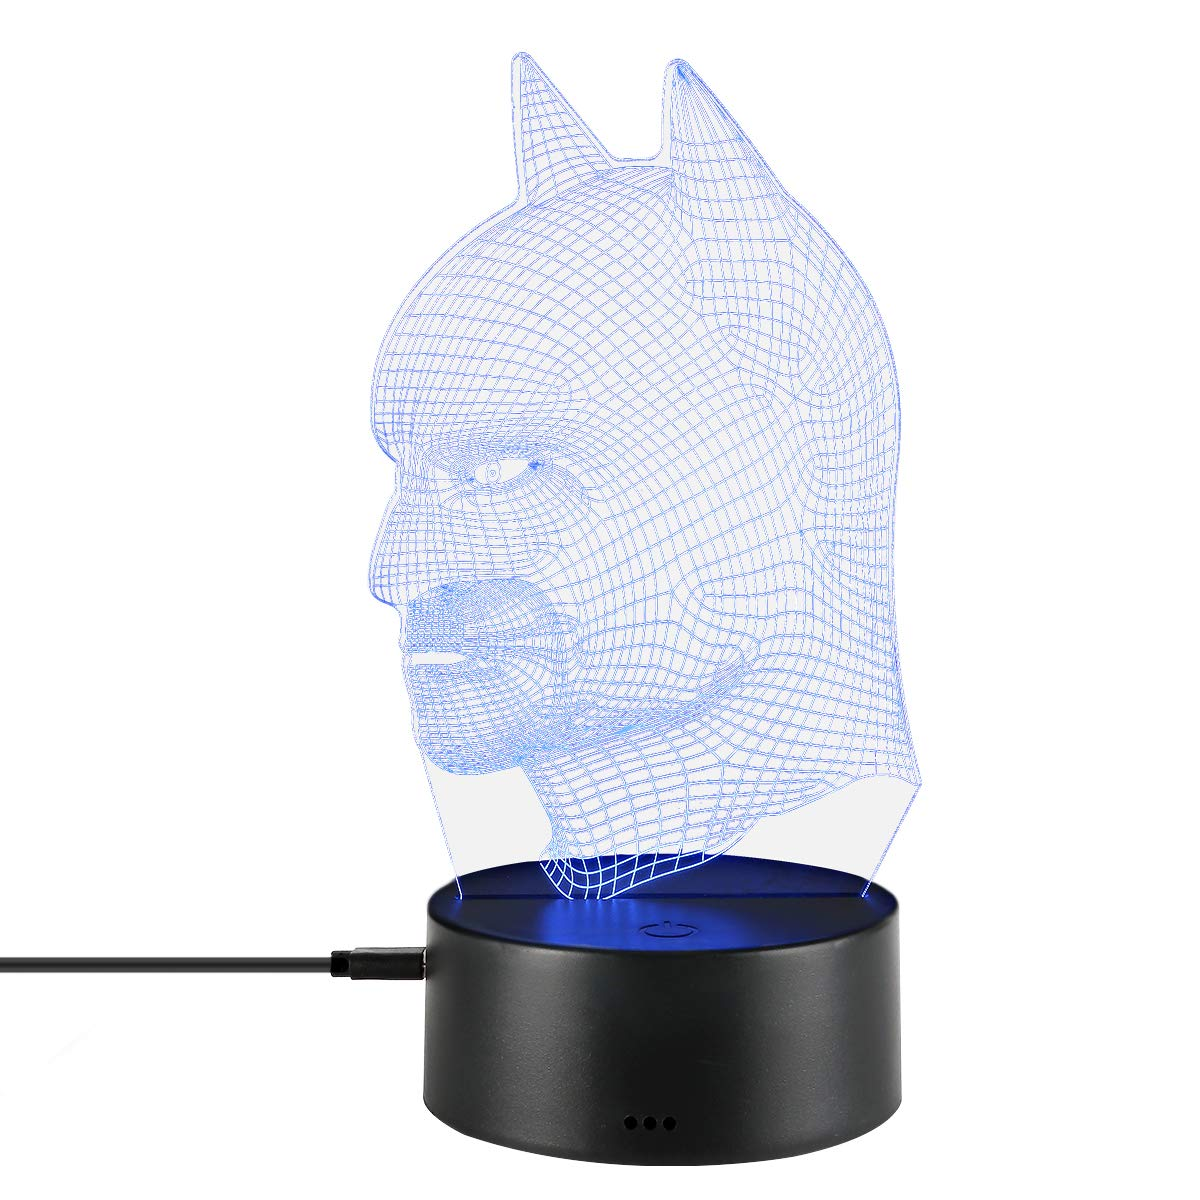 3D Optical Illusion Night Light USB Cable Smart Touch Button Desk Table Lights 7 Color Changing Bedroom Table Lamp Home Decoration Kids Gift (batman)